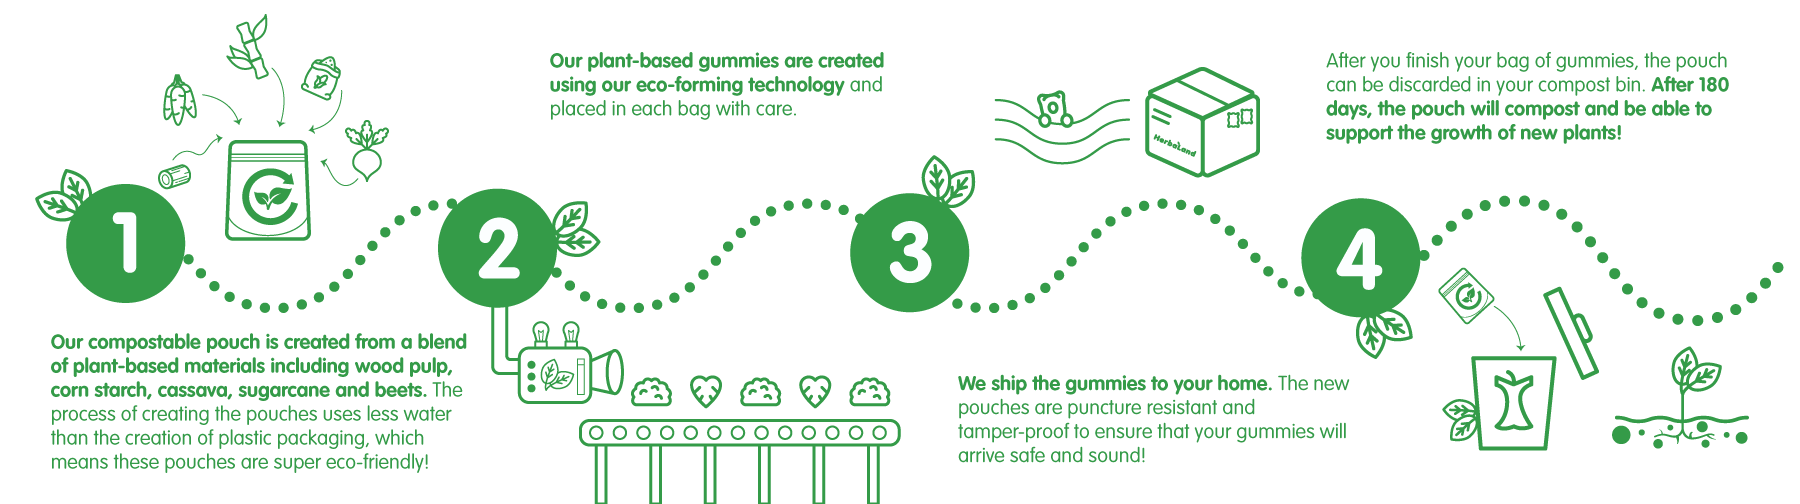 Infographic Herbaland compostable packaging